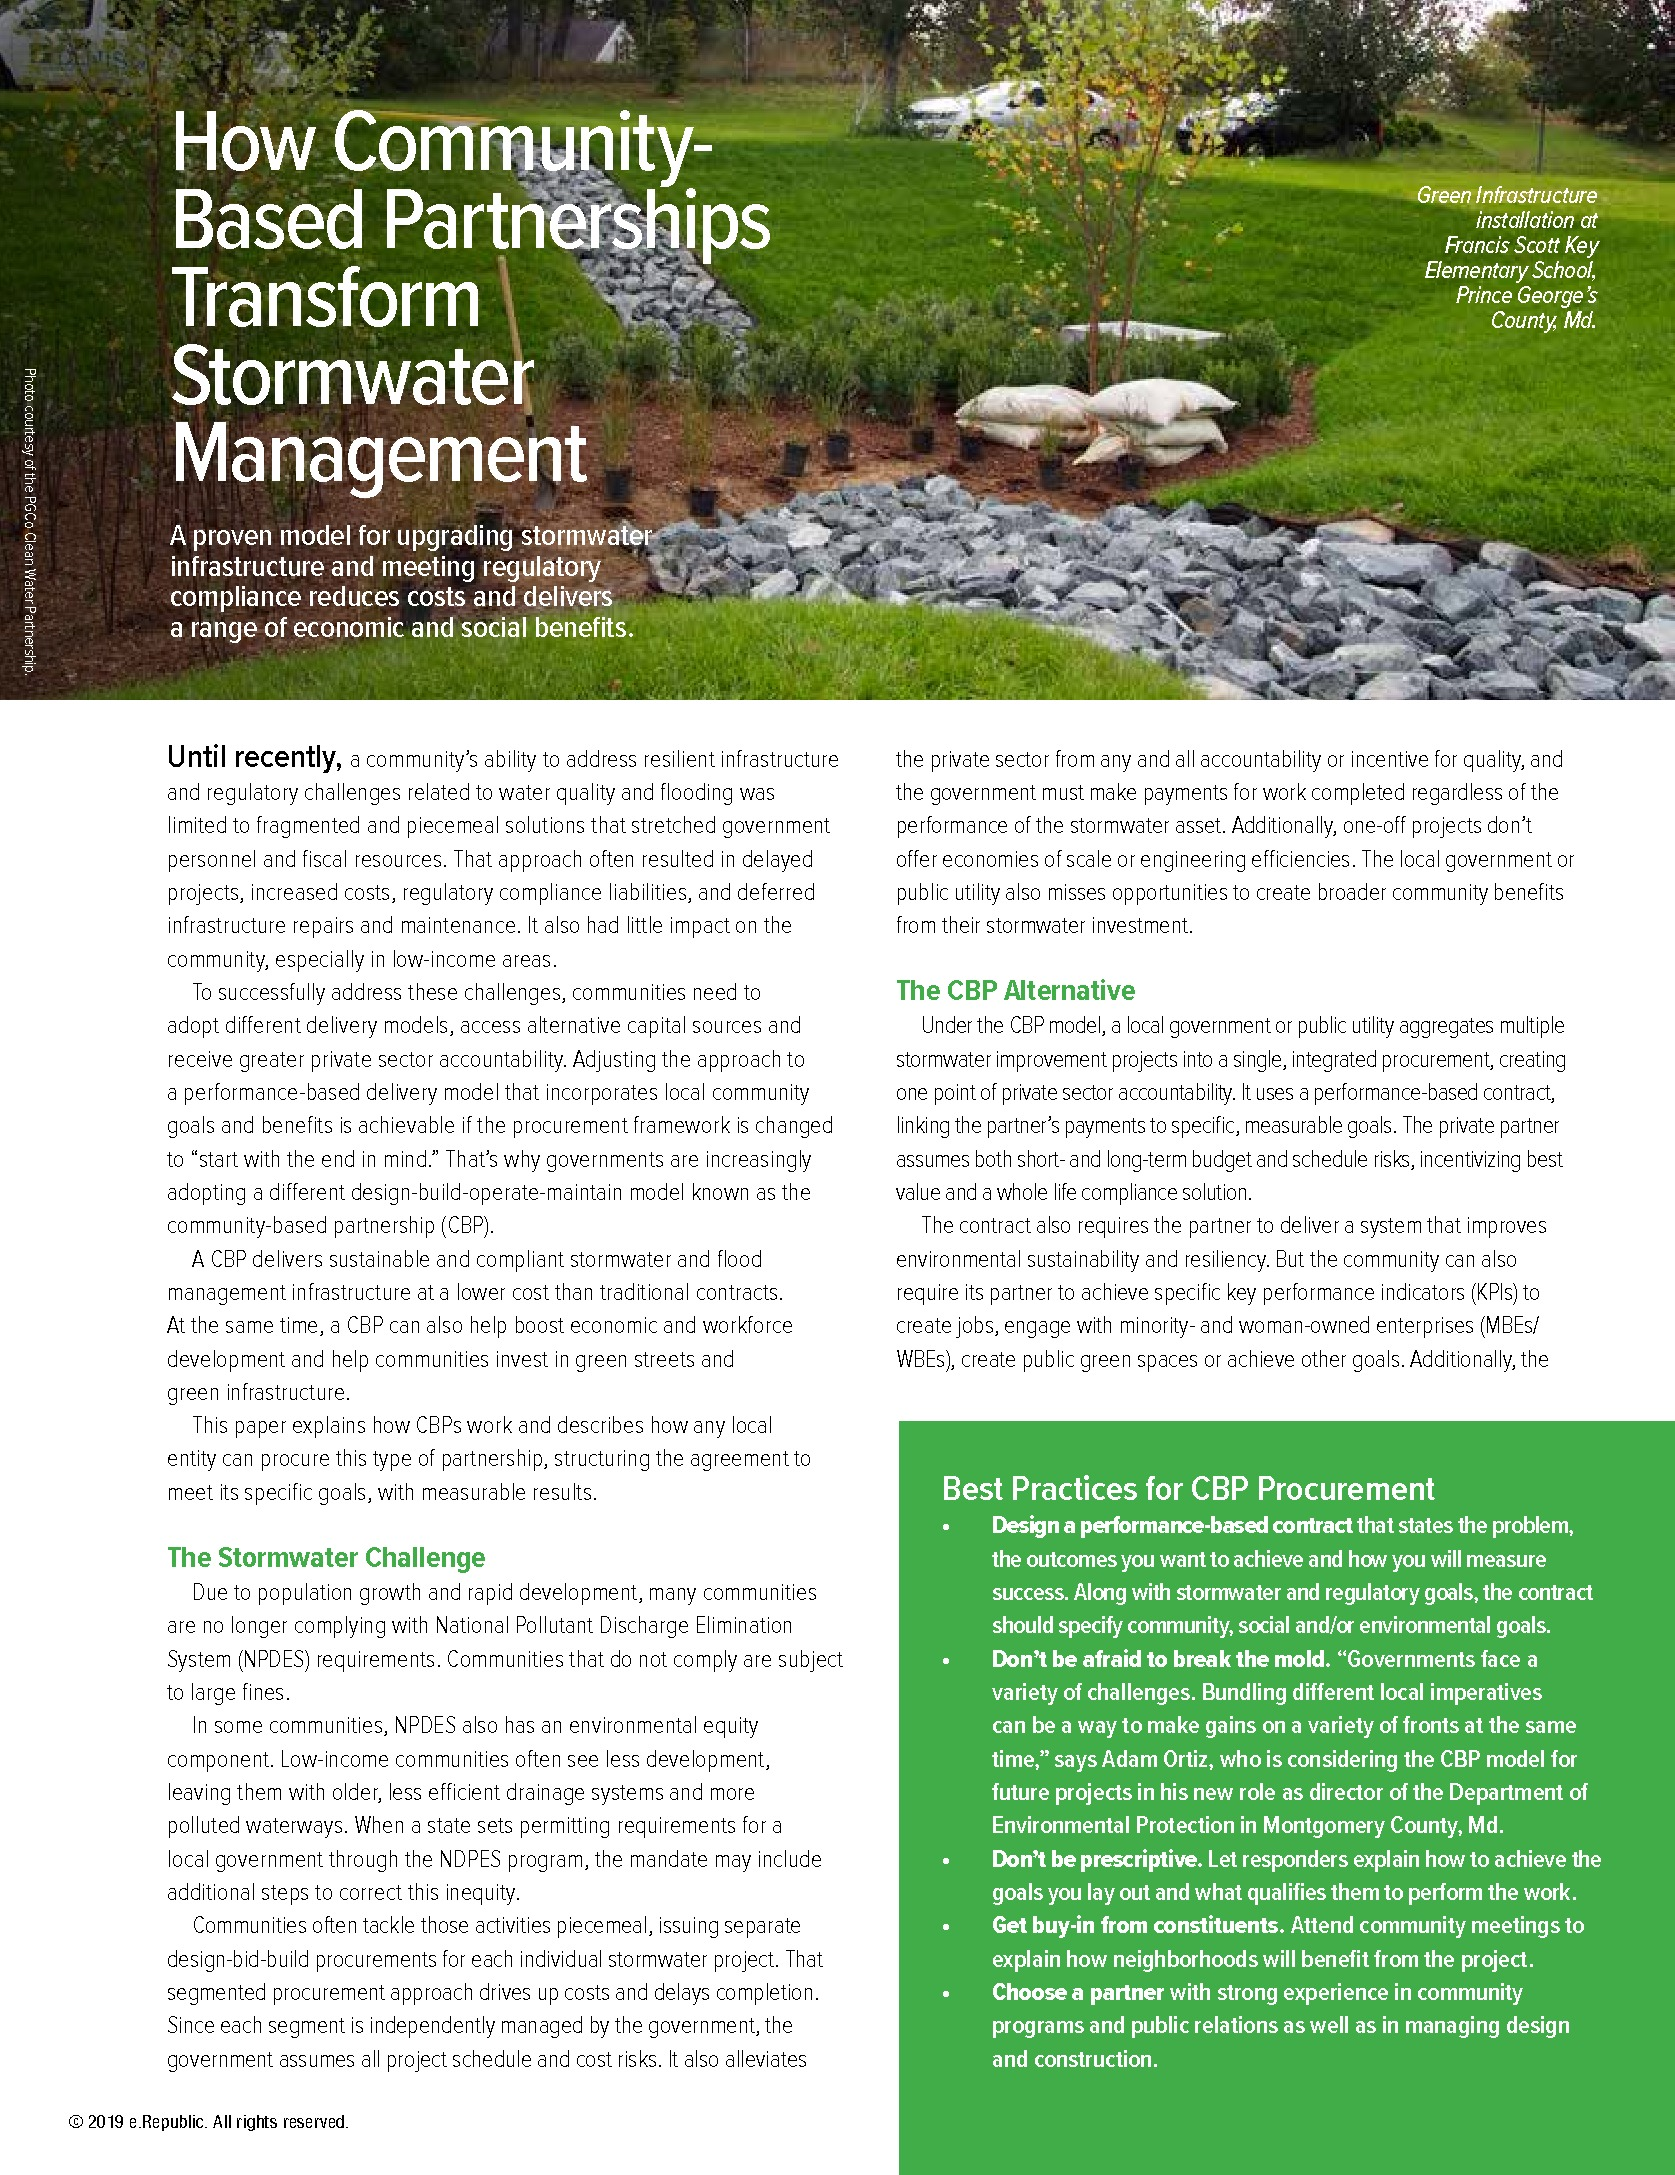 How Community-Based Partnerships Transform Stormwater Management